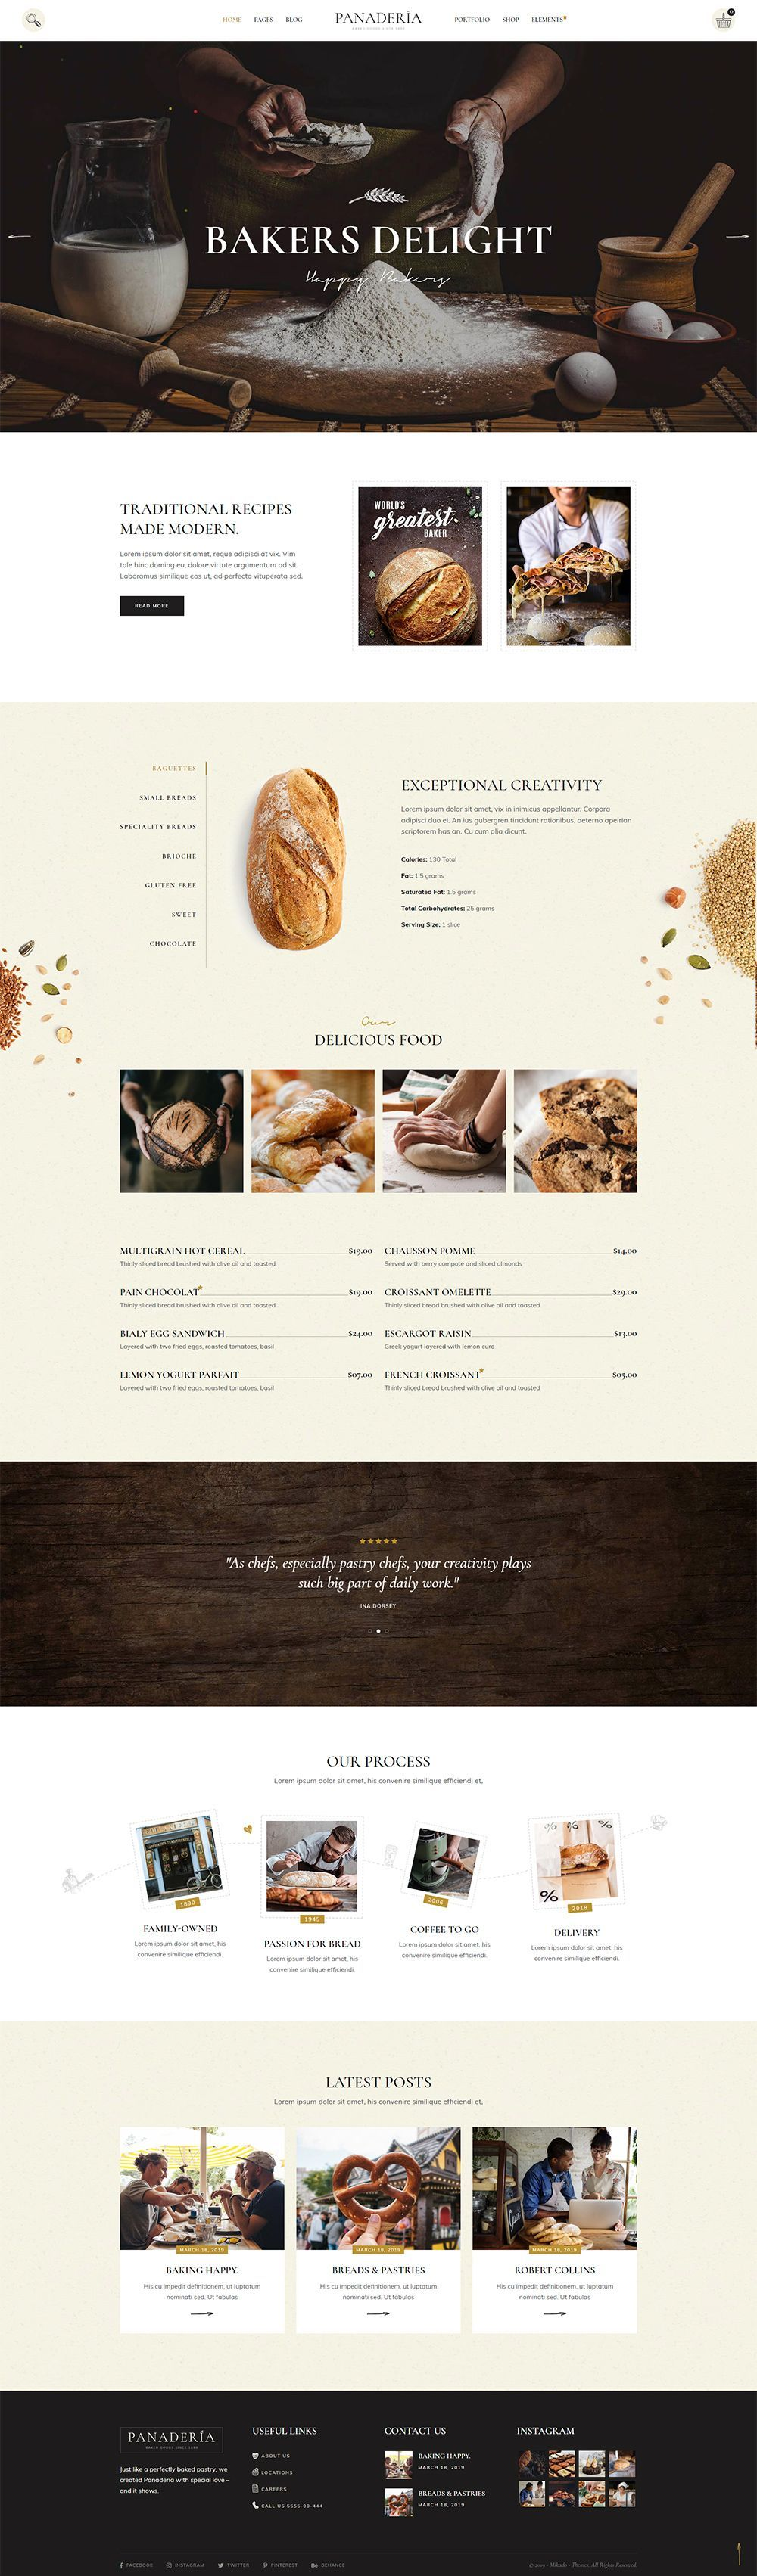 Panadería - Bakery and Pastry Shop Theme Made for bakeries and pastry shops, Panadería WordPress theme is the perfect ingredient your website has been waiting for!